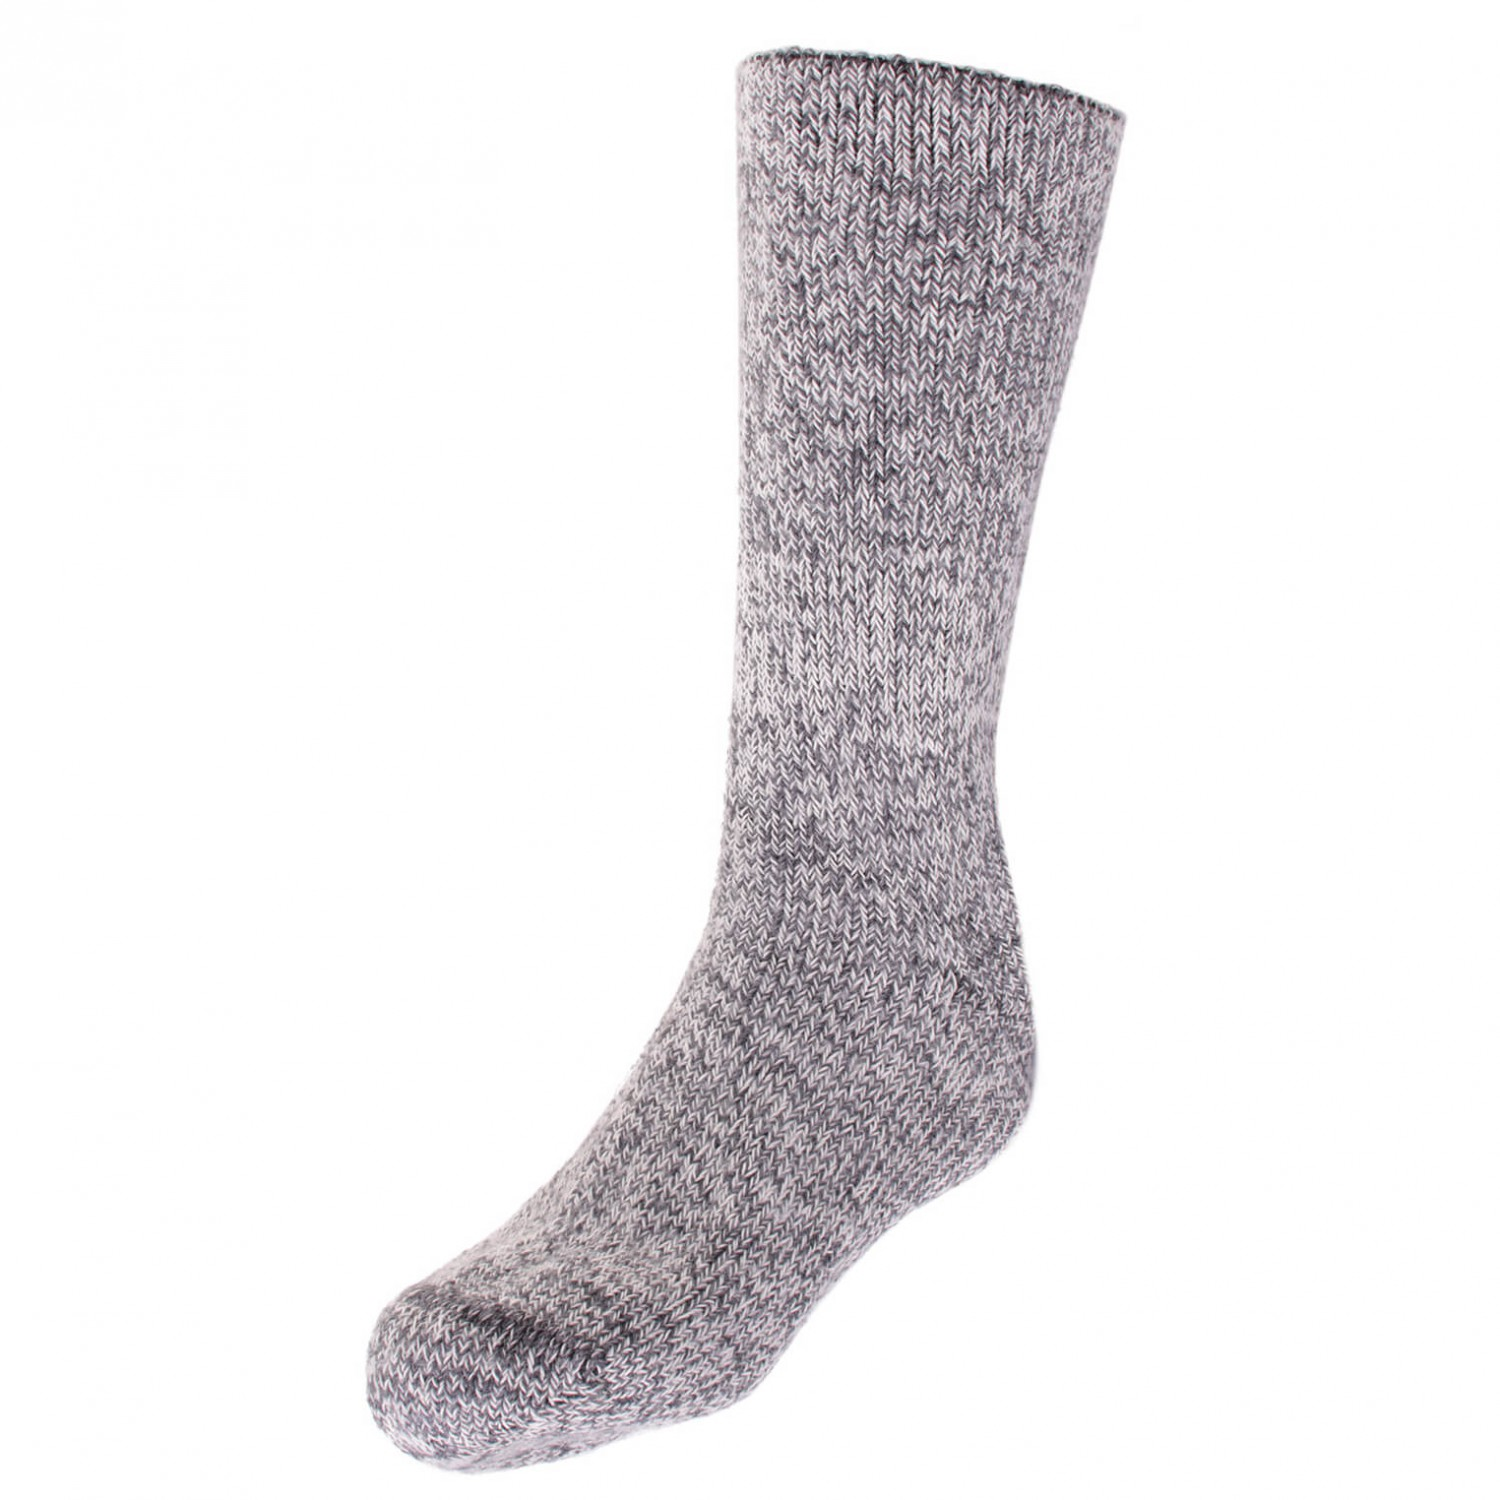 Woolpower - Socks 800 - Expeditionssocken Grau / Weiß